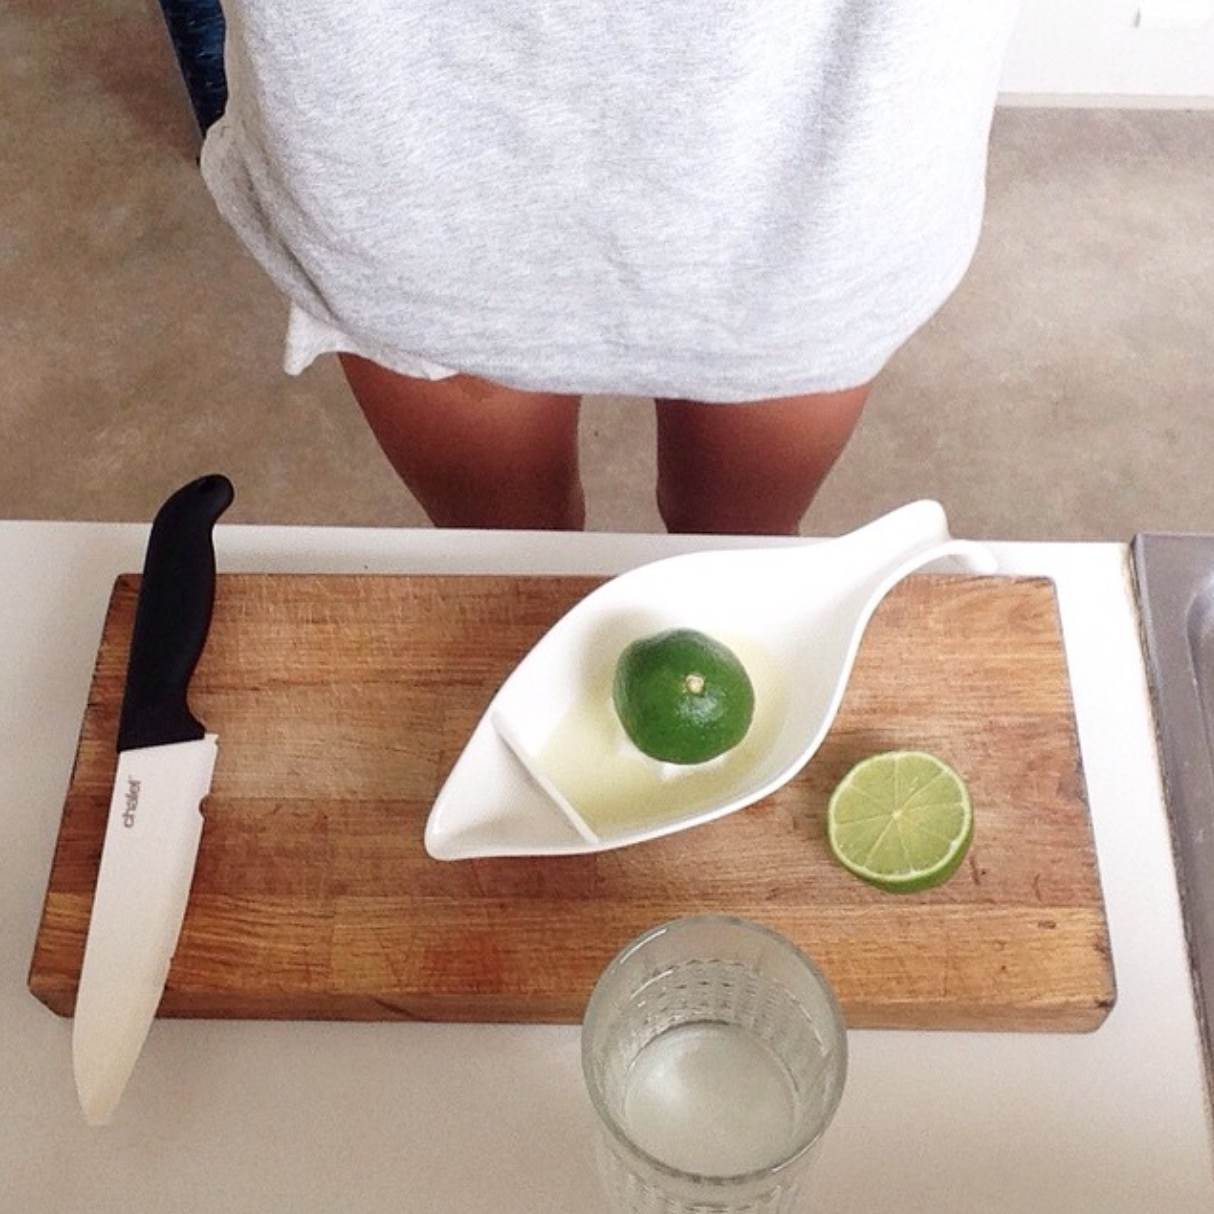 Starting the morning with fresh lime or lemon in purified water alkalises the body and kickstarts digestion. It's a great morning habit to get into.